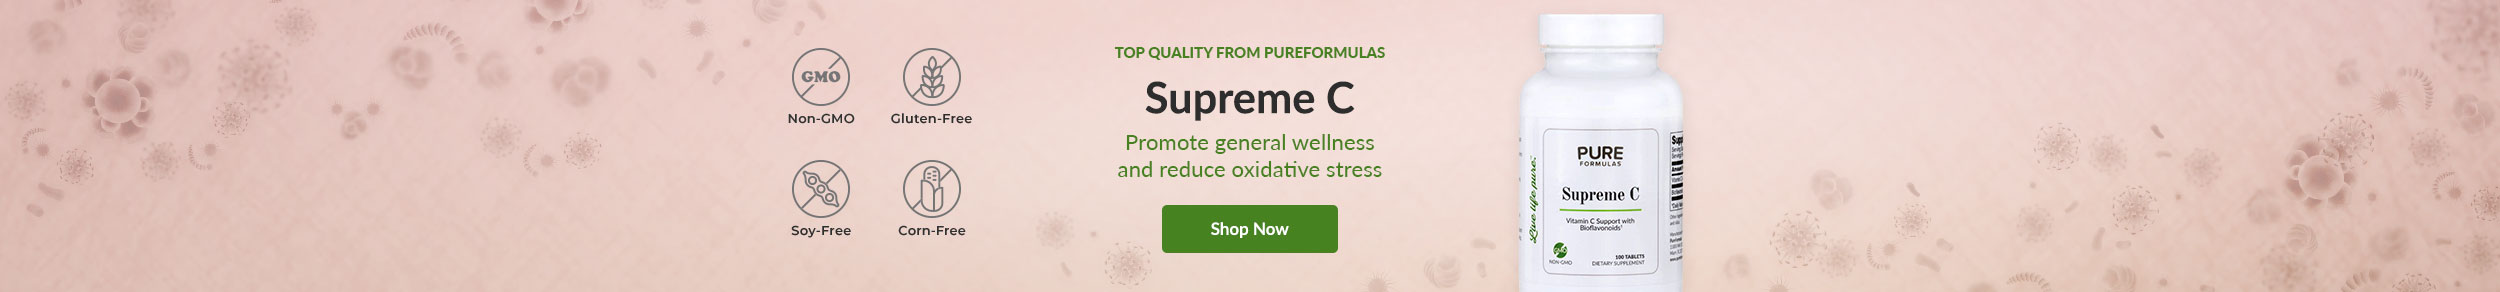 Top Quality from PureFormulas: Supreme C - Promote general wellness and reduce oxidative stress